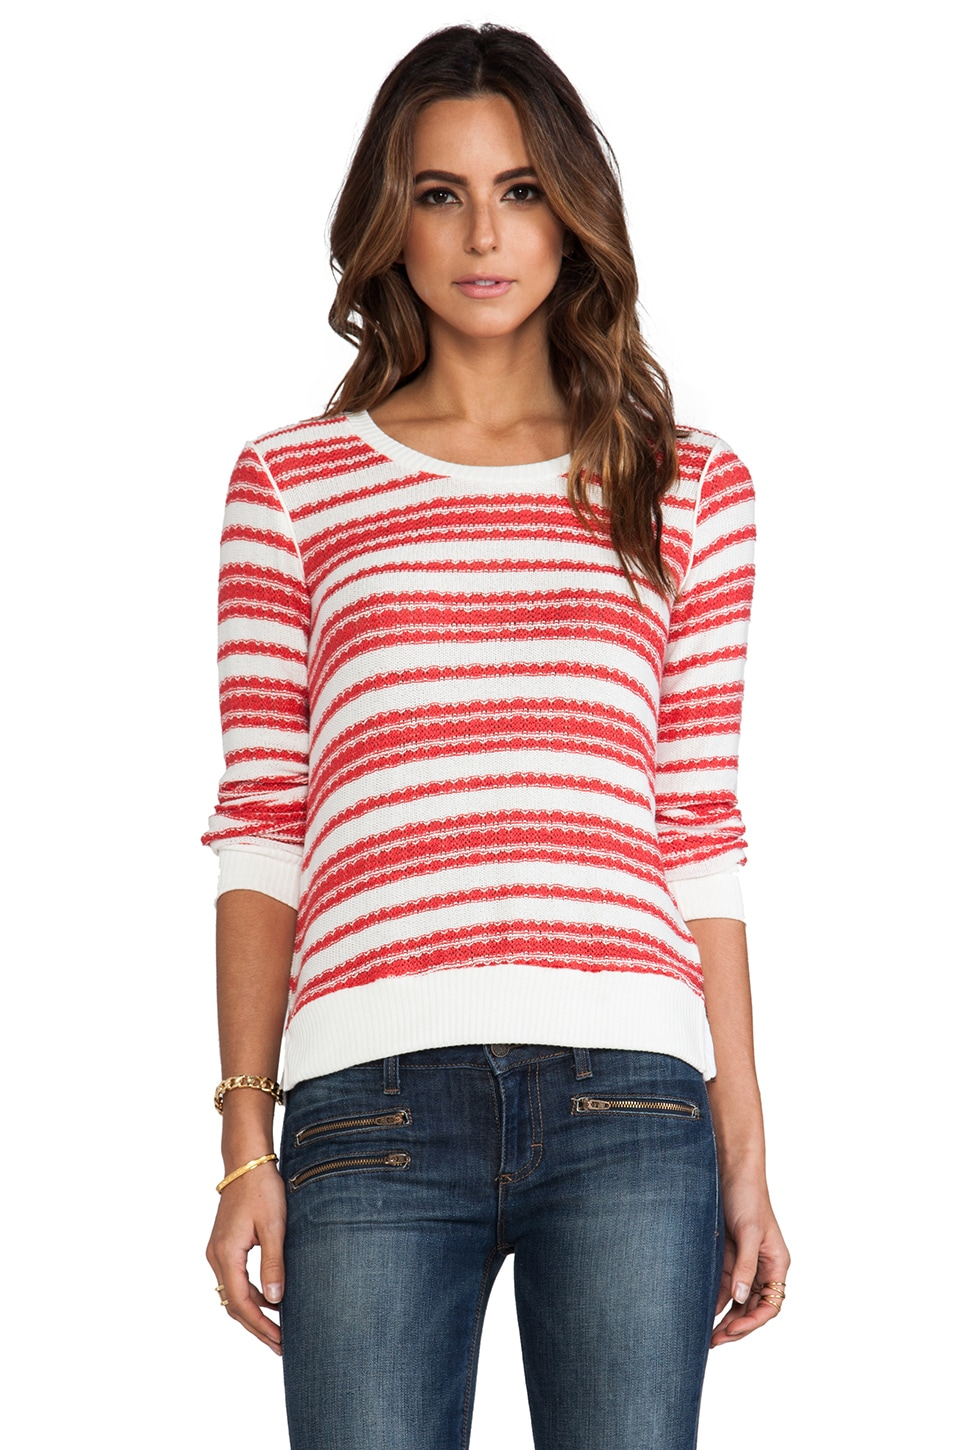 Splendid Palisades Stripe Loose Knit Tee in Fiesta